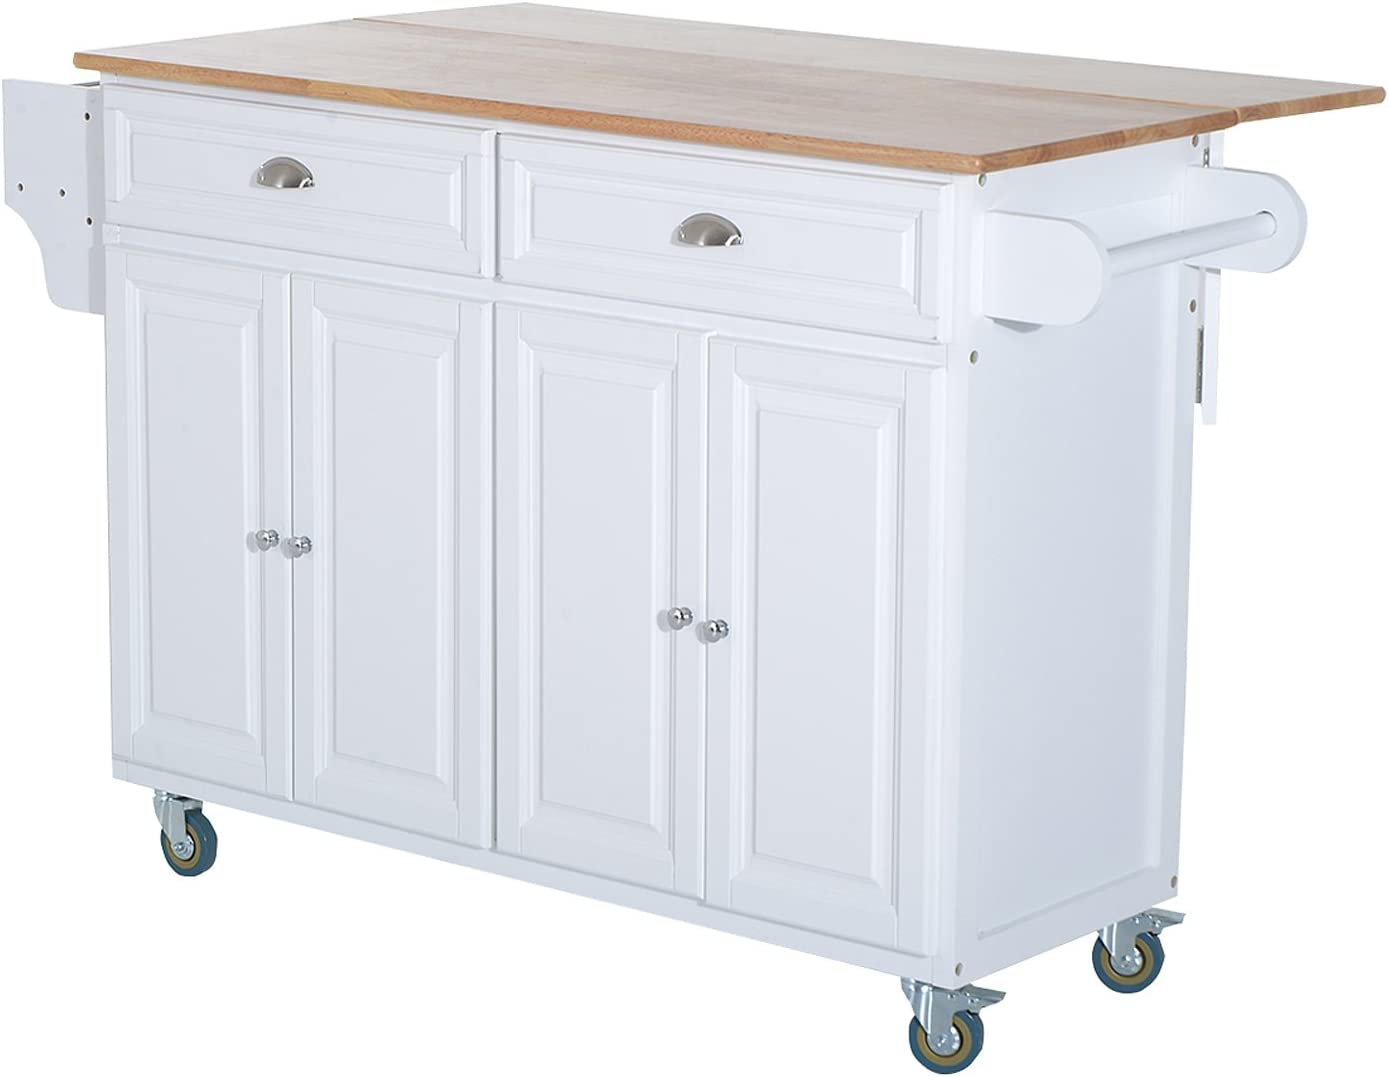 Homcom Rolling Oak Wood Drop Leaf Kitchen Island Cart With Storage And Butcher Block White Kitchen Islands Carts